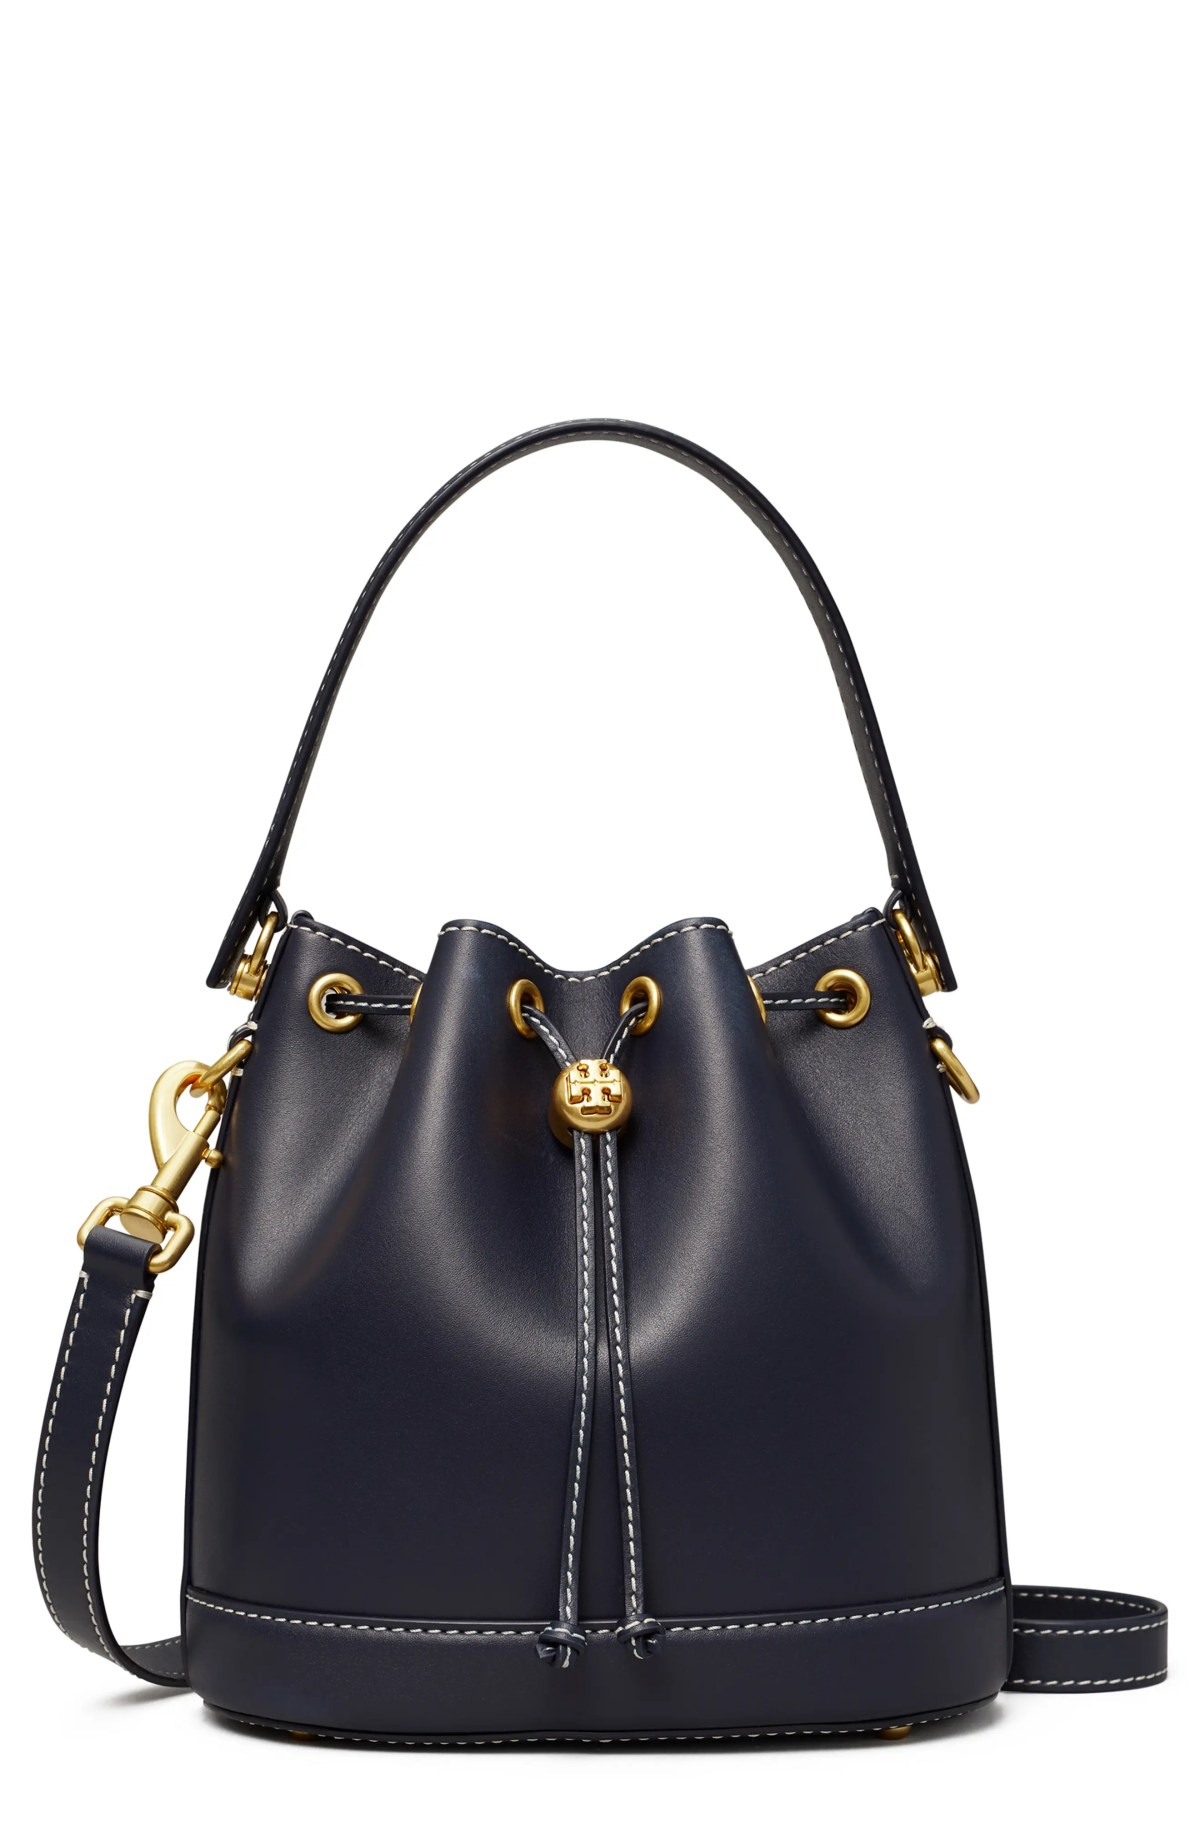 TORY BURCH T Monogram Leather Bucket Bag, Main, color, MIDNIGHT